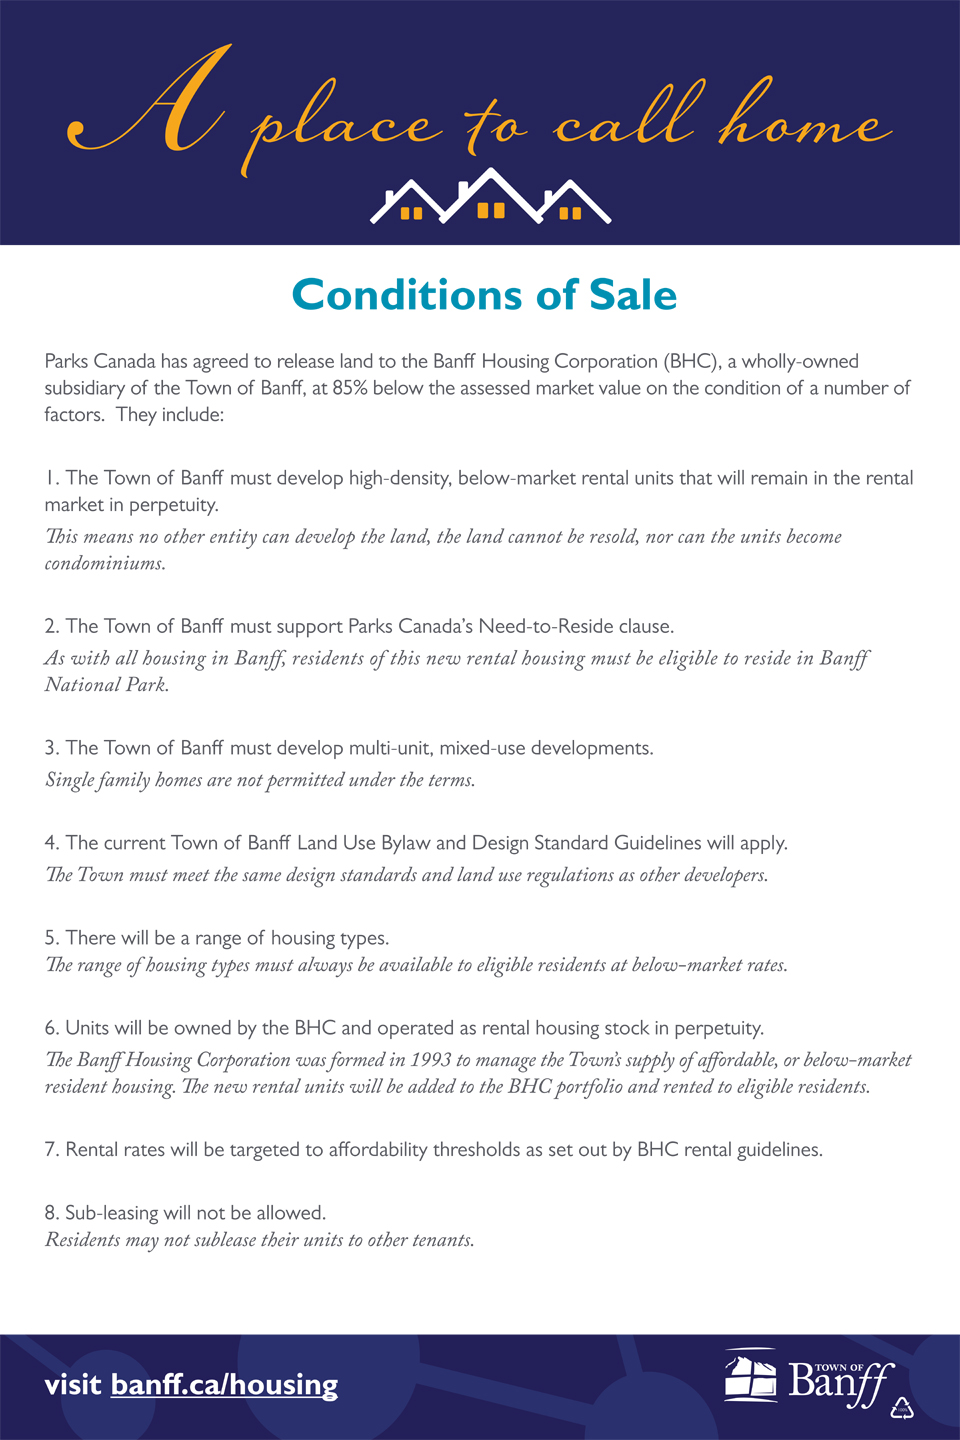 Conditions of Sale